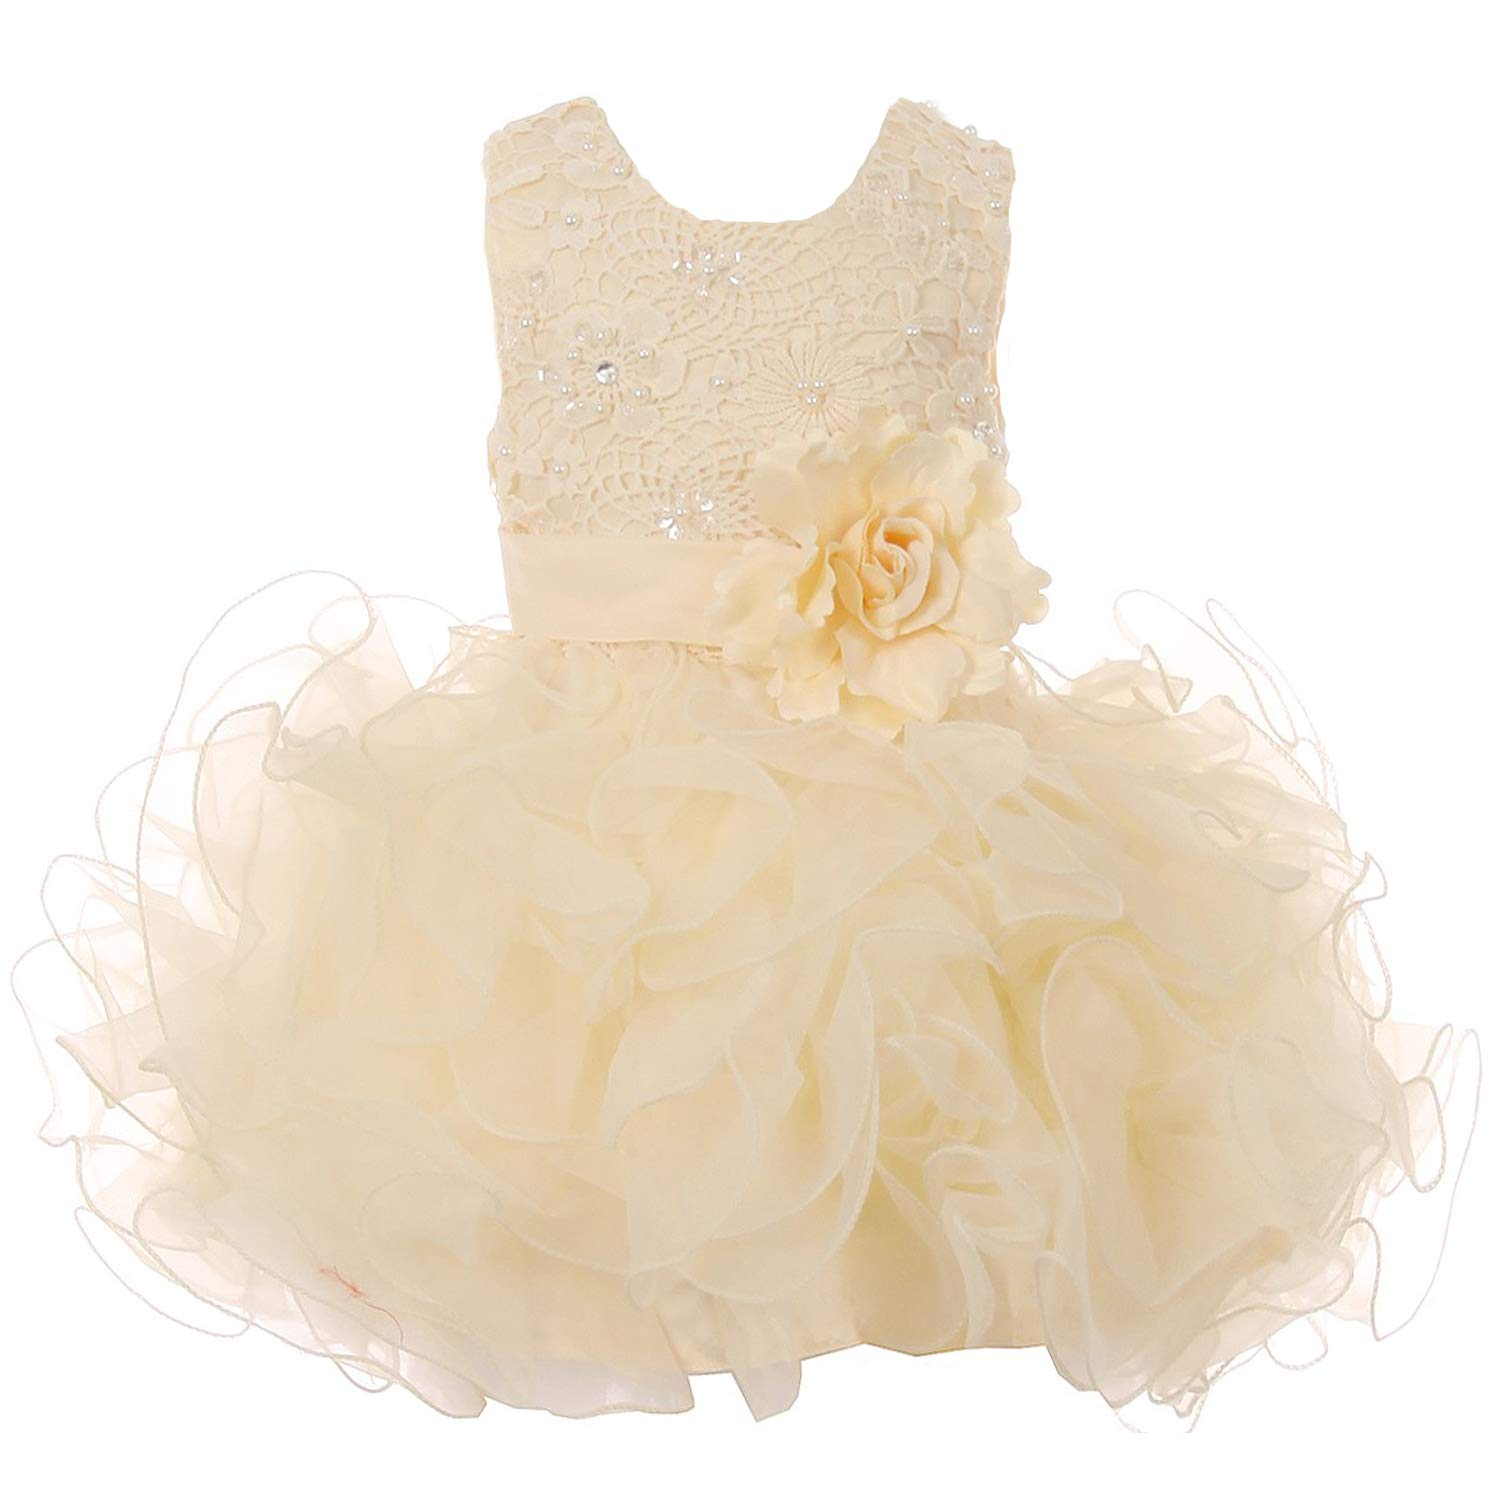 2401e0390c90 Amazon.com  Satin Glittered Tulle Baby Girl Dress with Embroidered ...